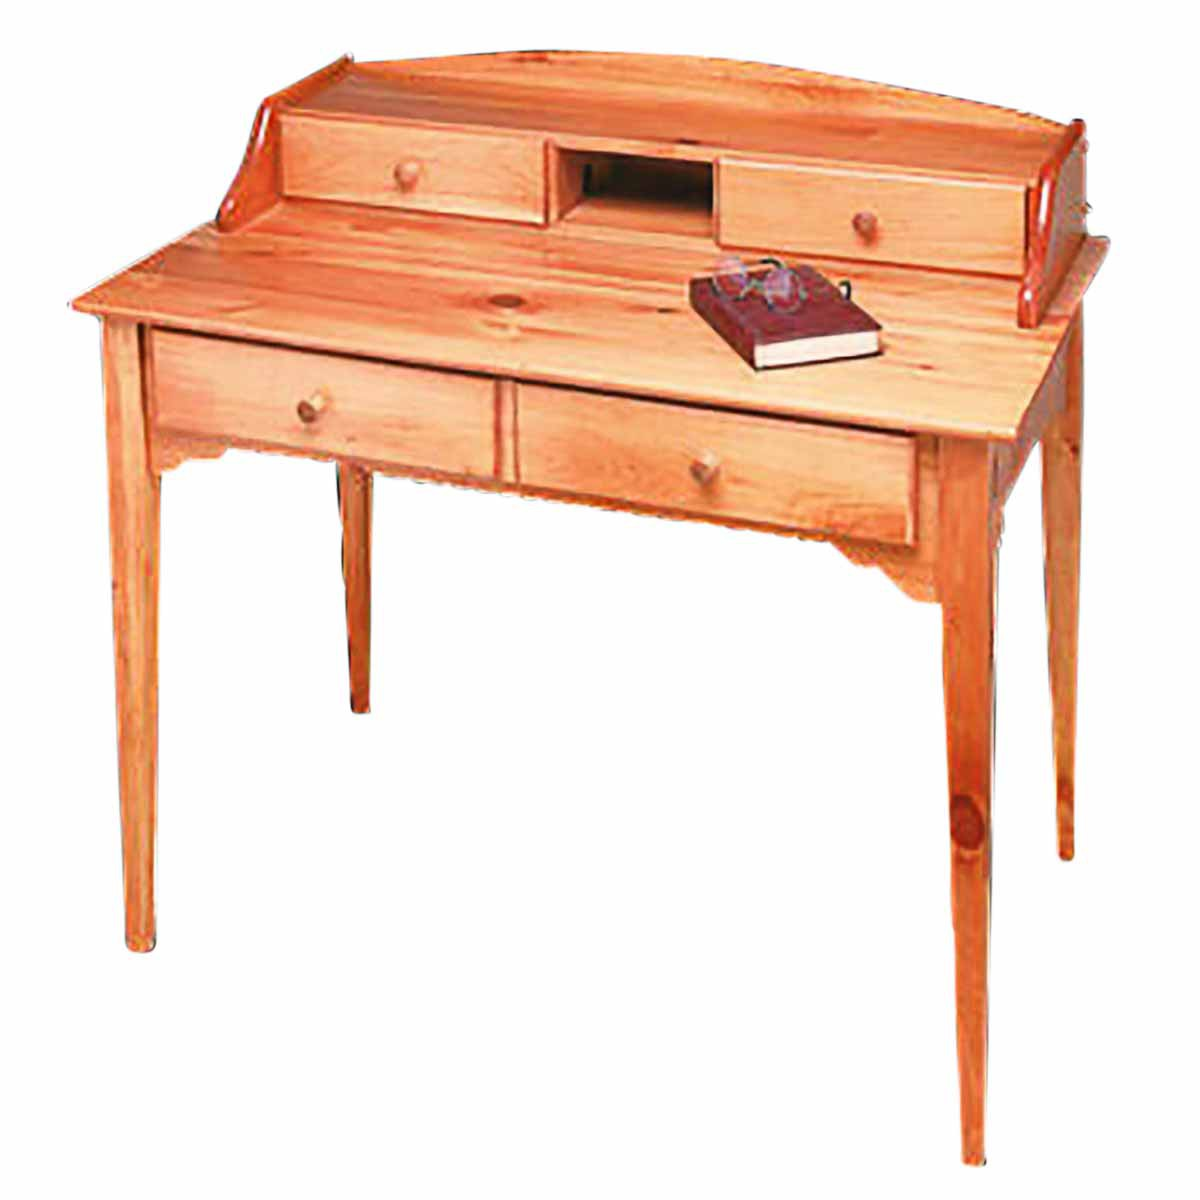 Desk Mission Honey Solid Pine Desk | Renovator's Supply